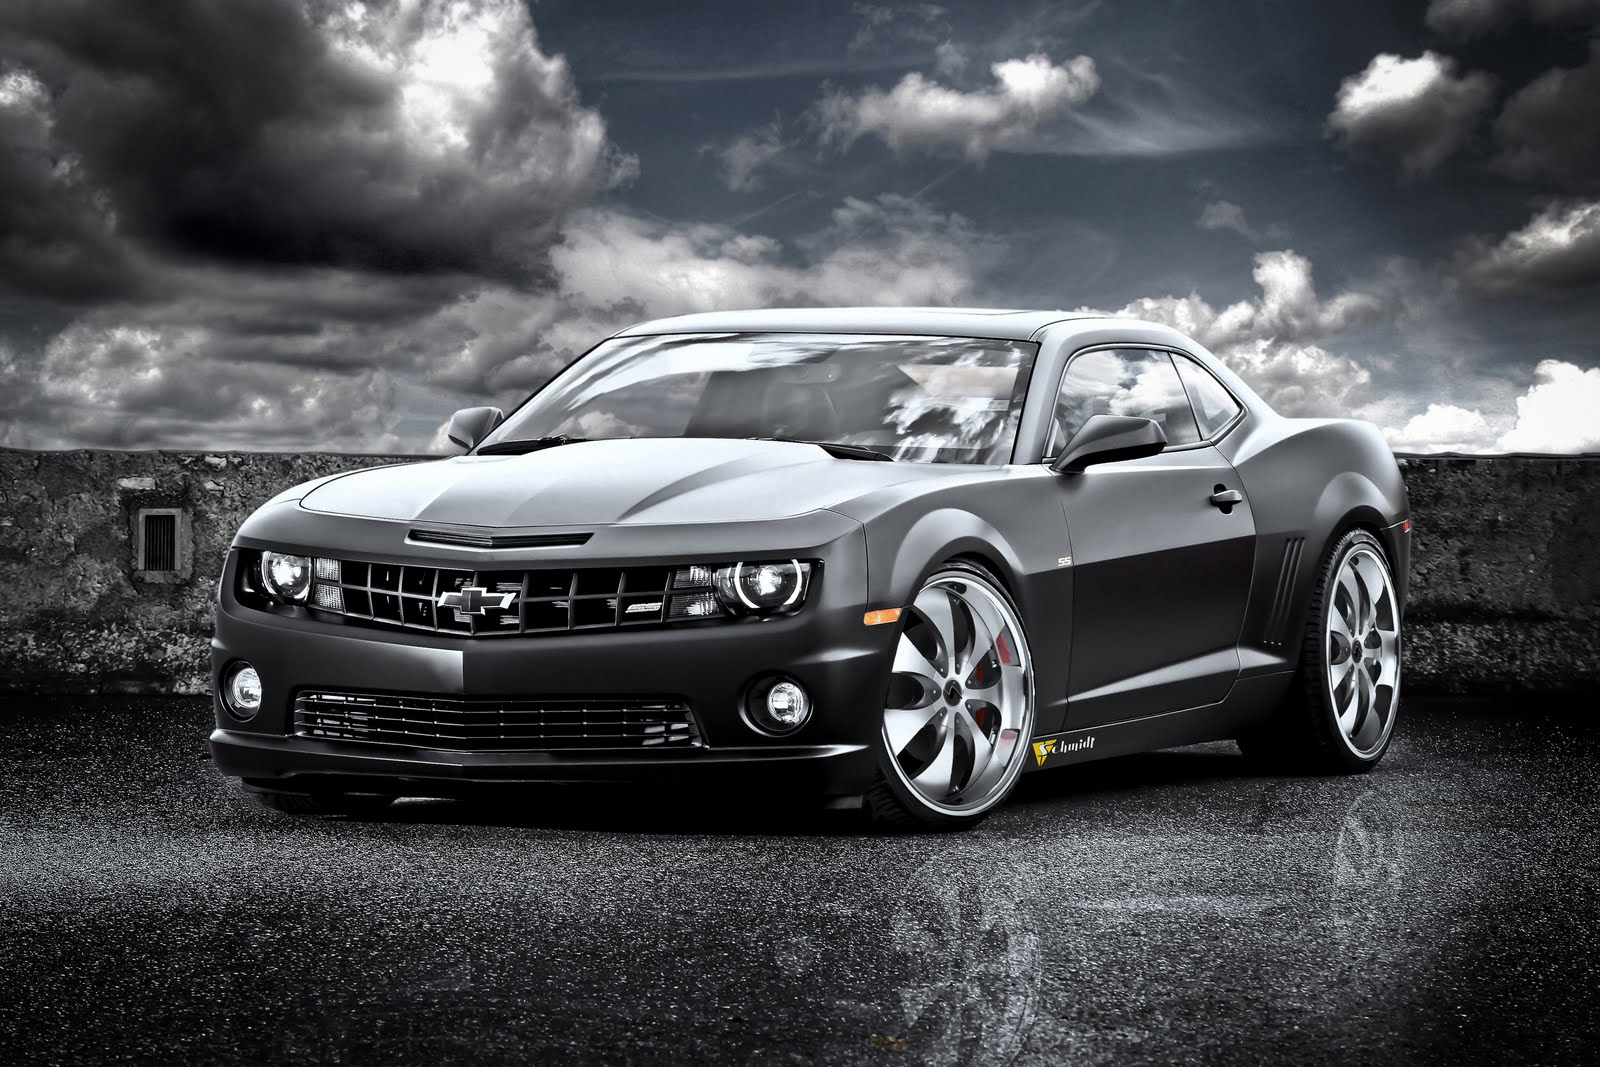 azuri car chevrolet camaro ss black cat. Black Bedroom Furniture Sets. Home Design Ideas